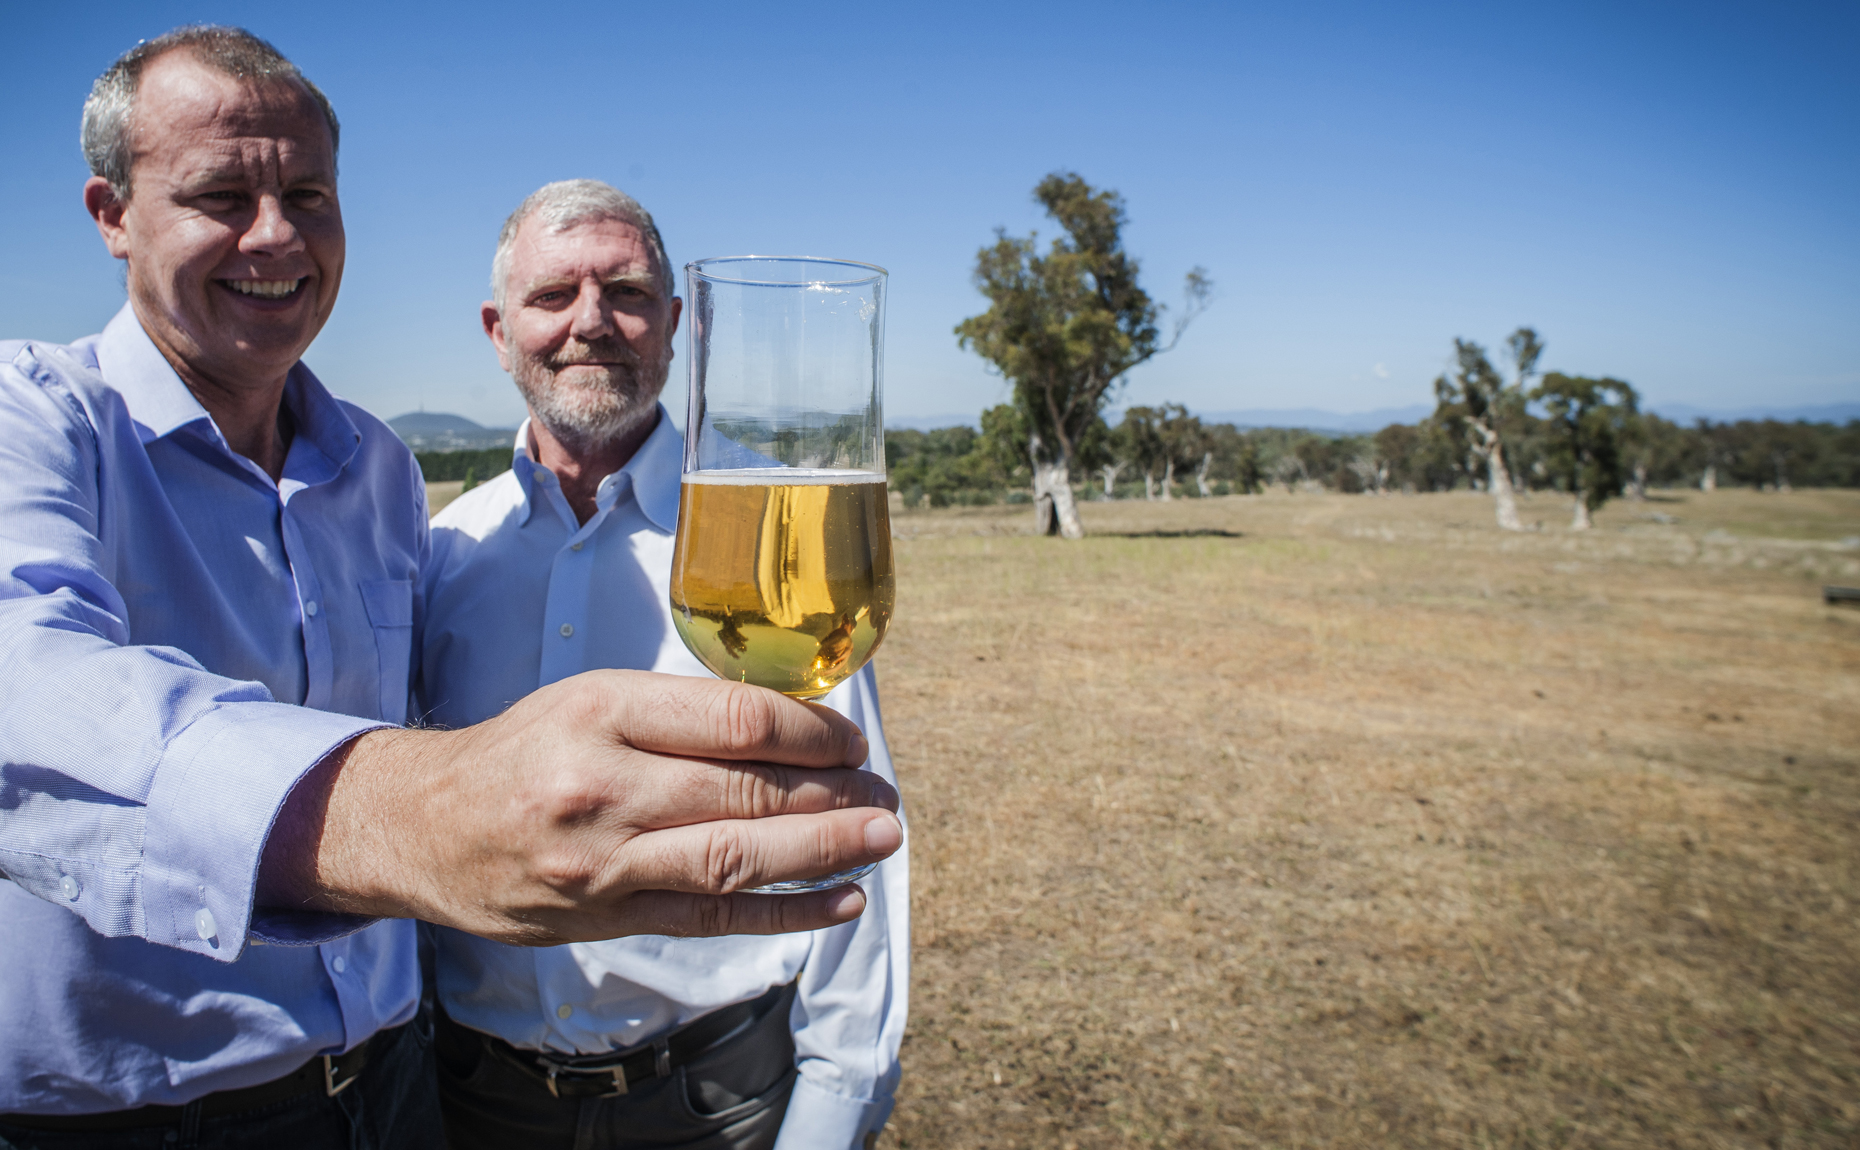 Dr Crispin Howitt and Dr Phil Larkin stand in a field, holding a glass of beer